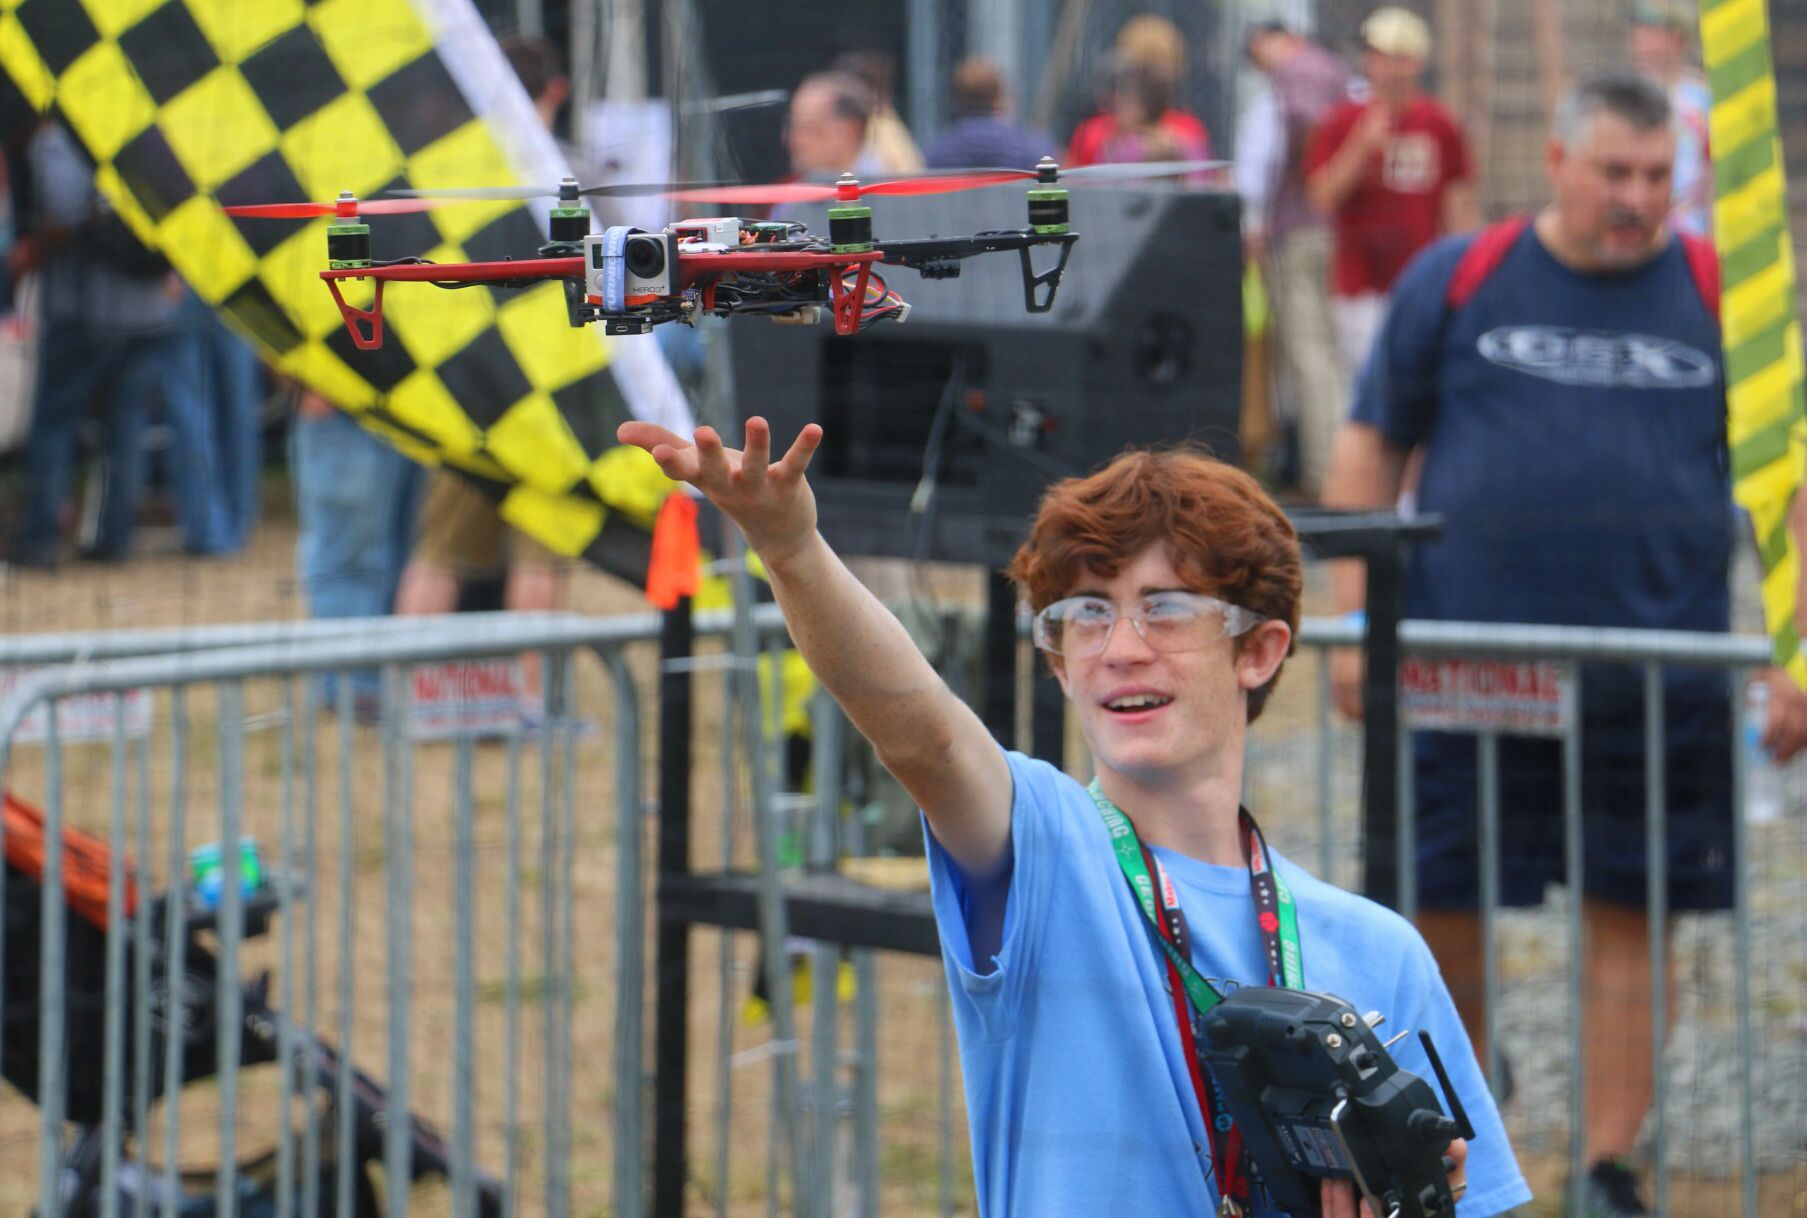 Deriving fun from Unmanned Aerial Vehicles